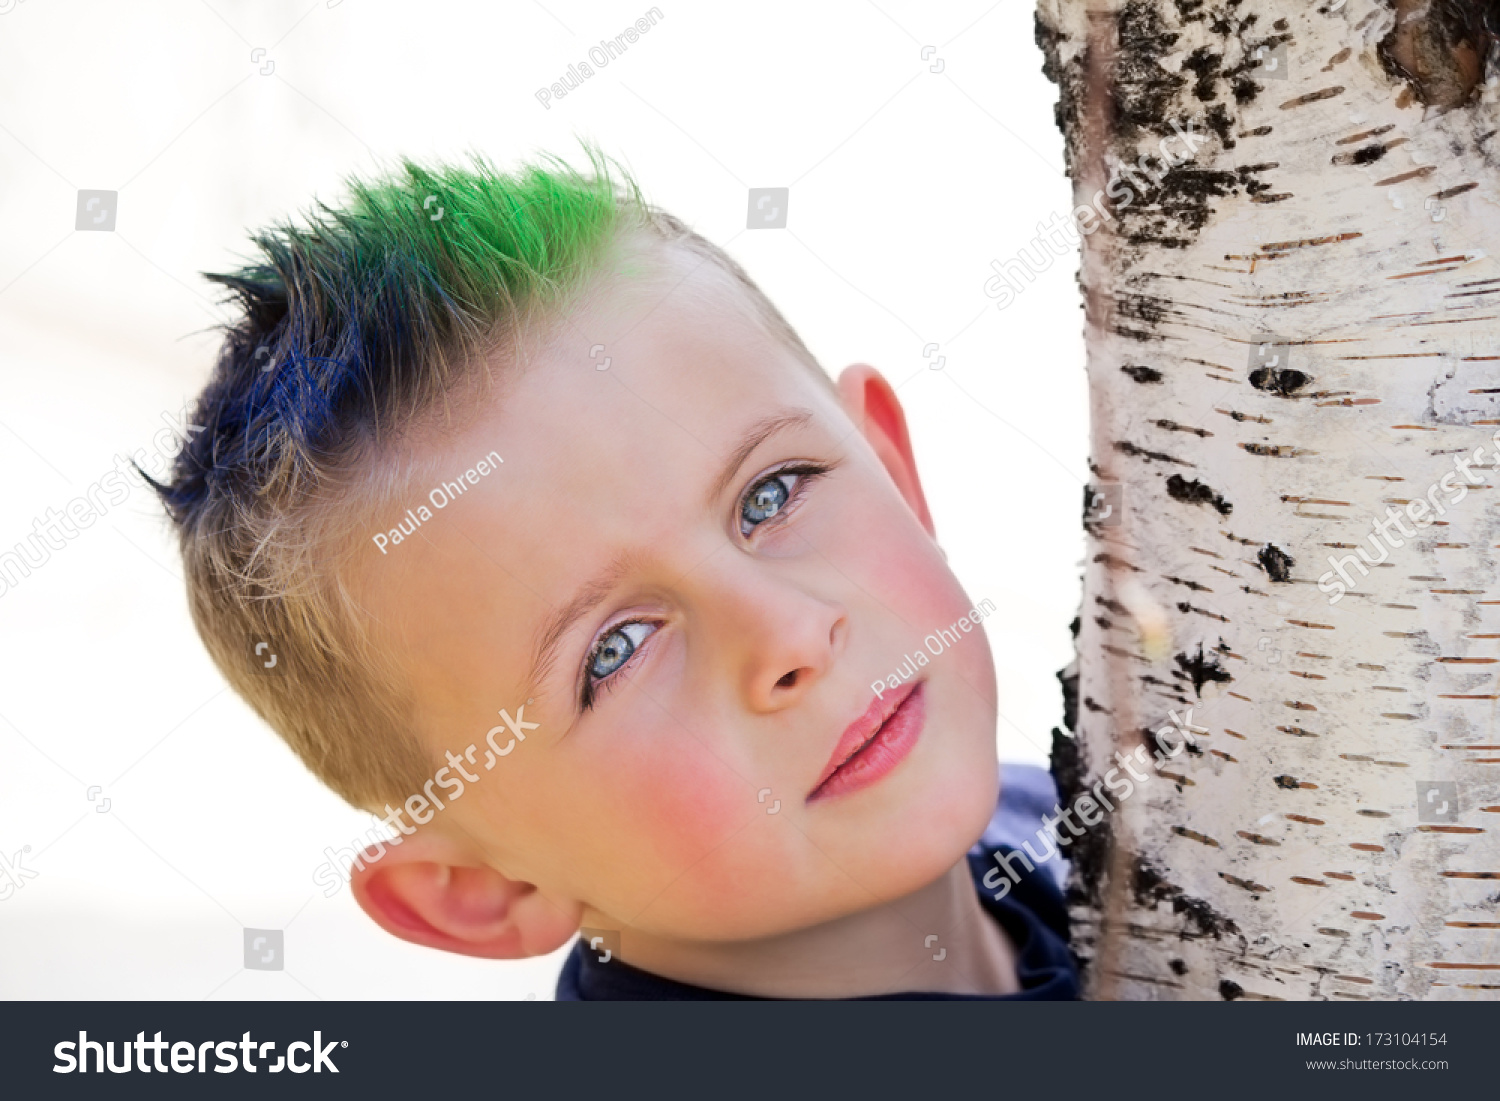 Young Boy Blue Green Spiky Hair Stock Photo Edit Now 173104154